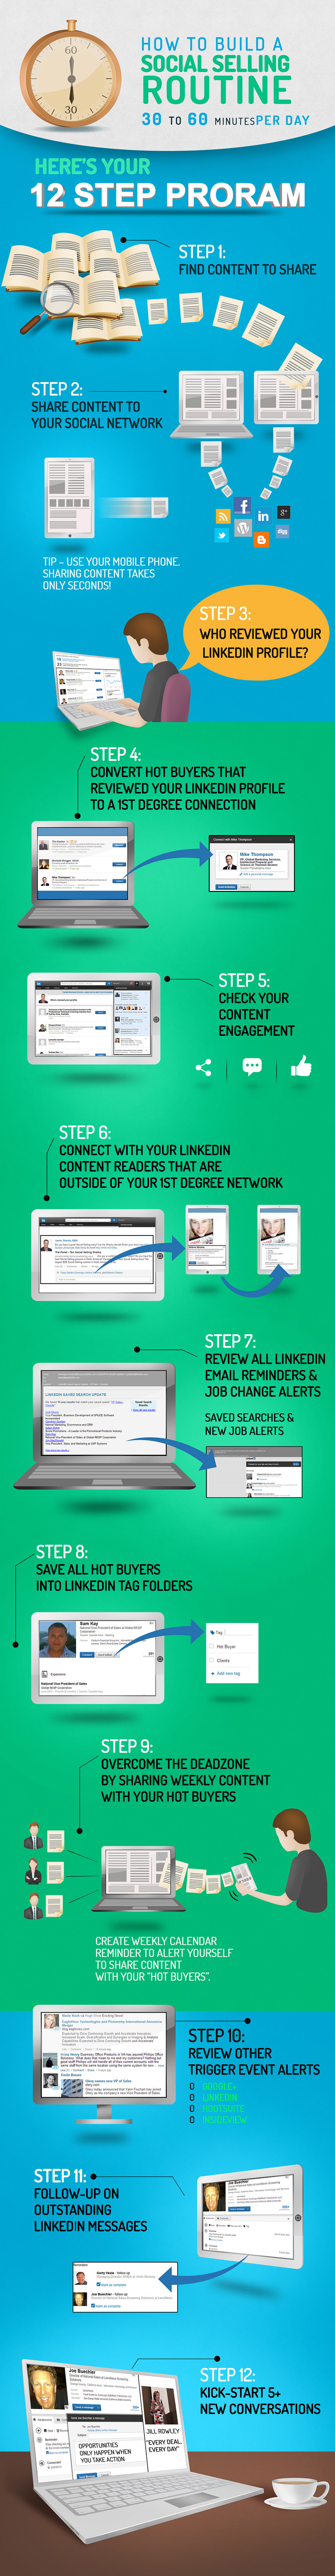 How To Build A Social Selling Routine Infographic